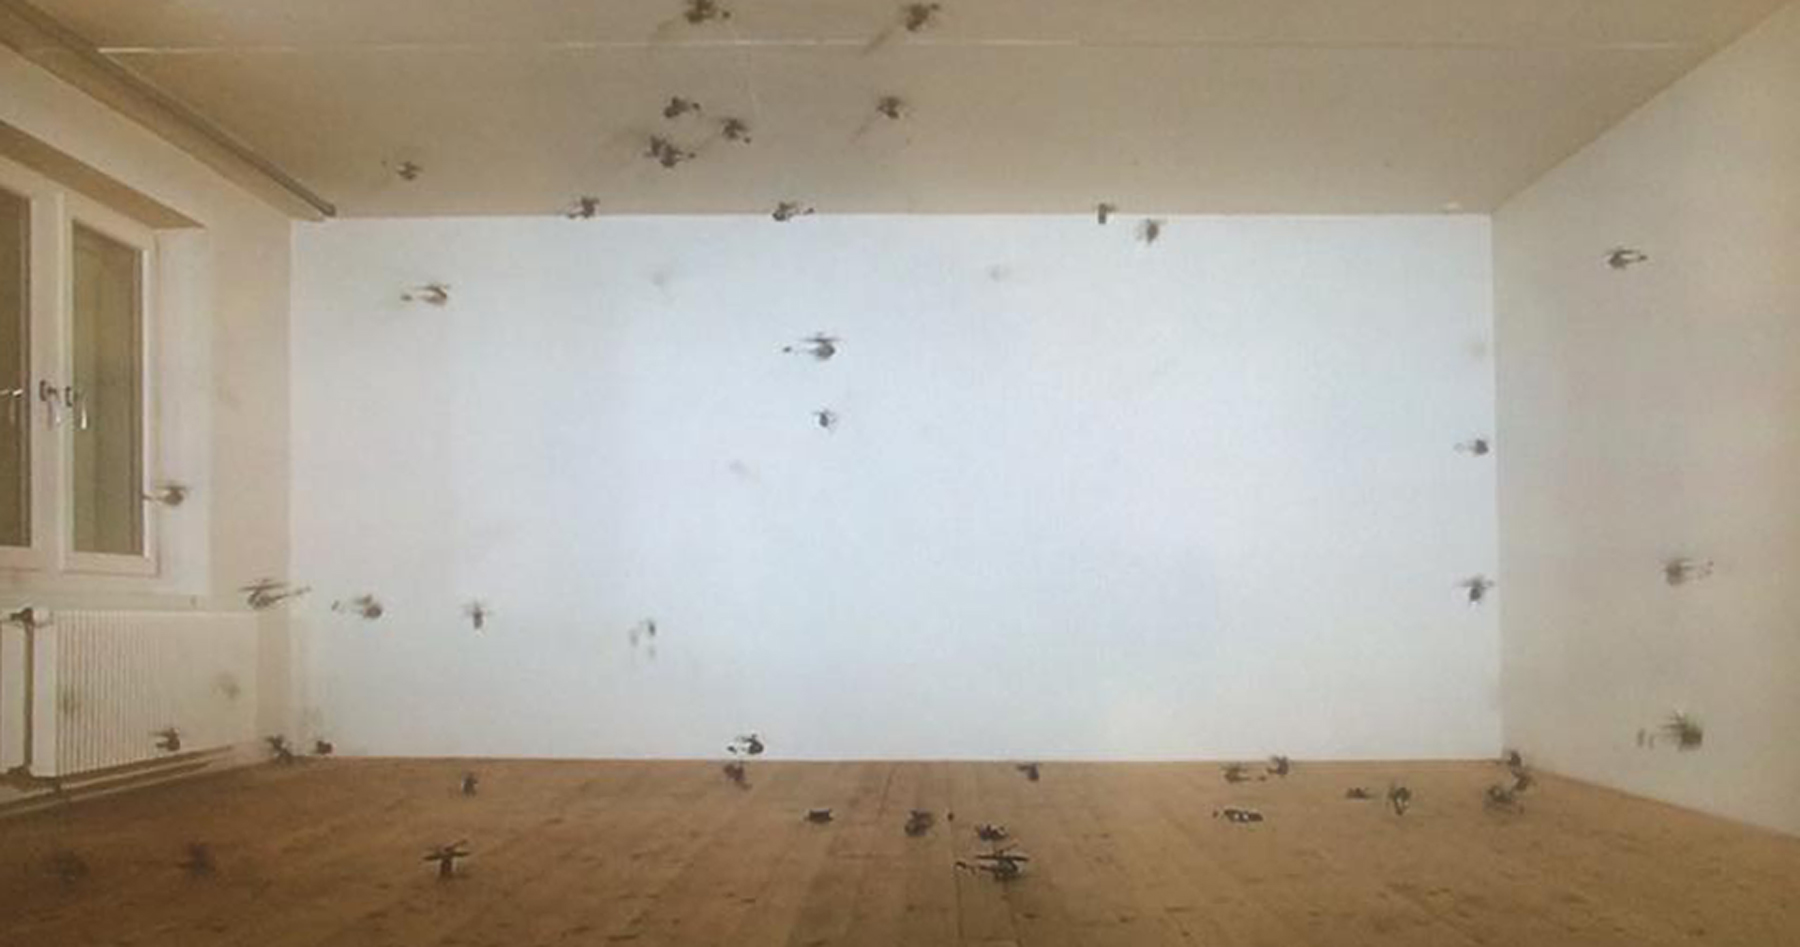 Roman Signer   56 kleine Helikopter  (56 Small Helicopters), 2008 single channel video with sound